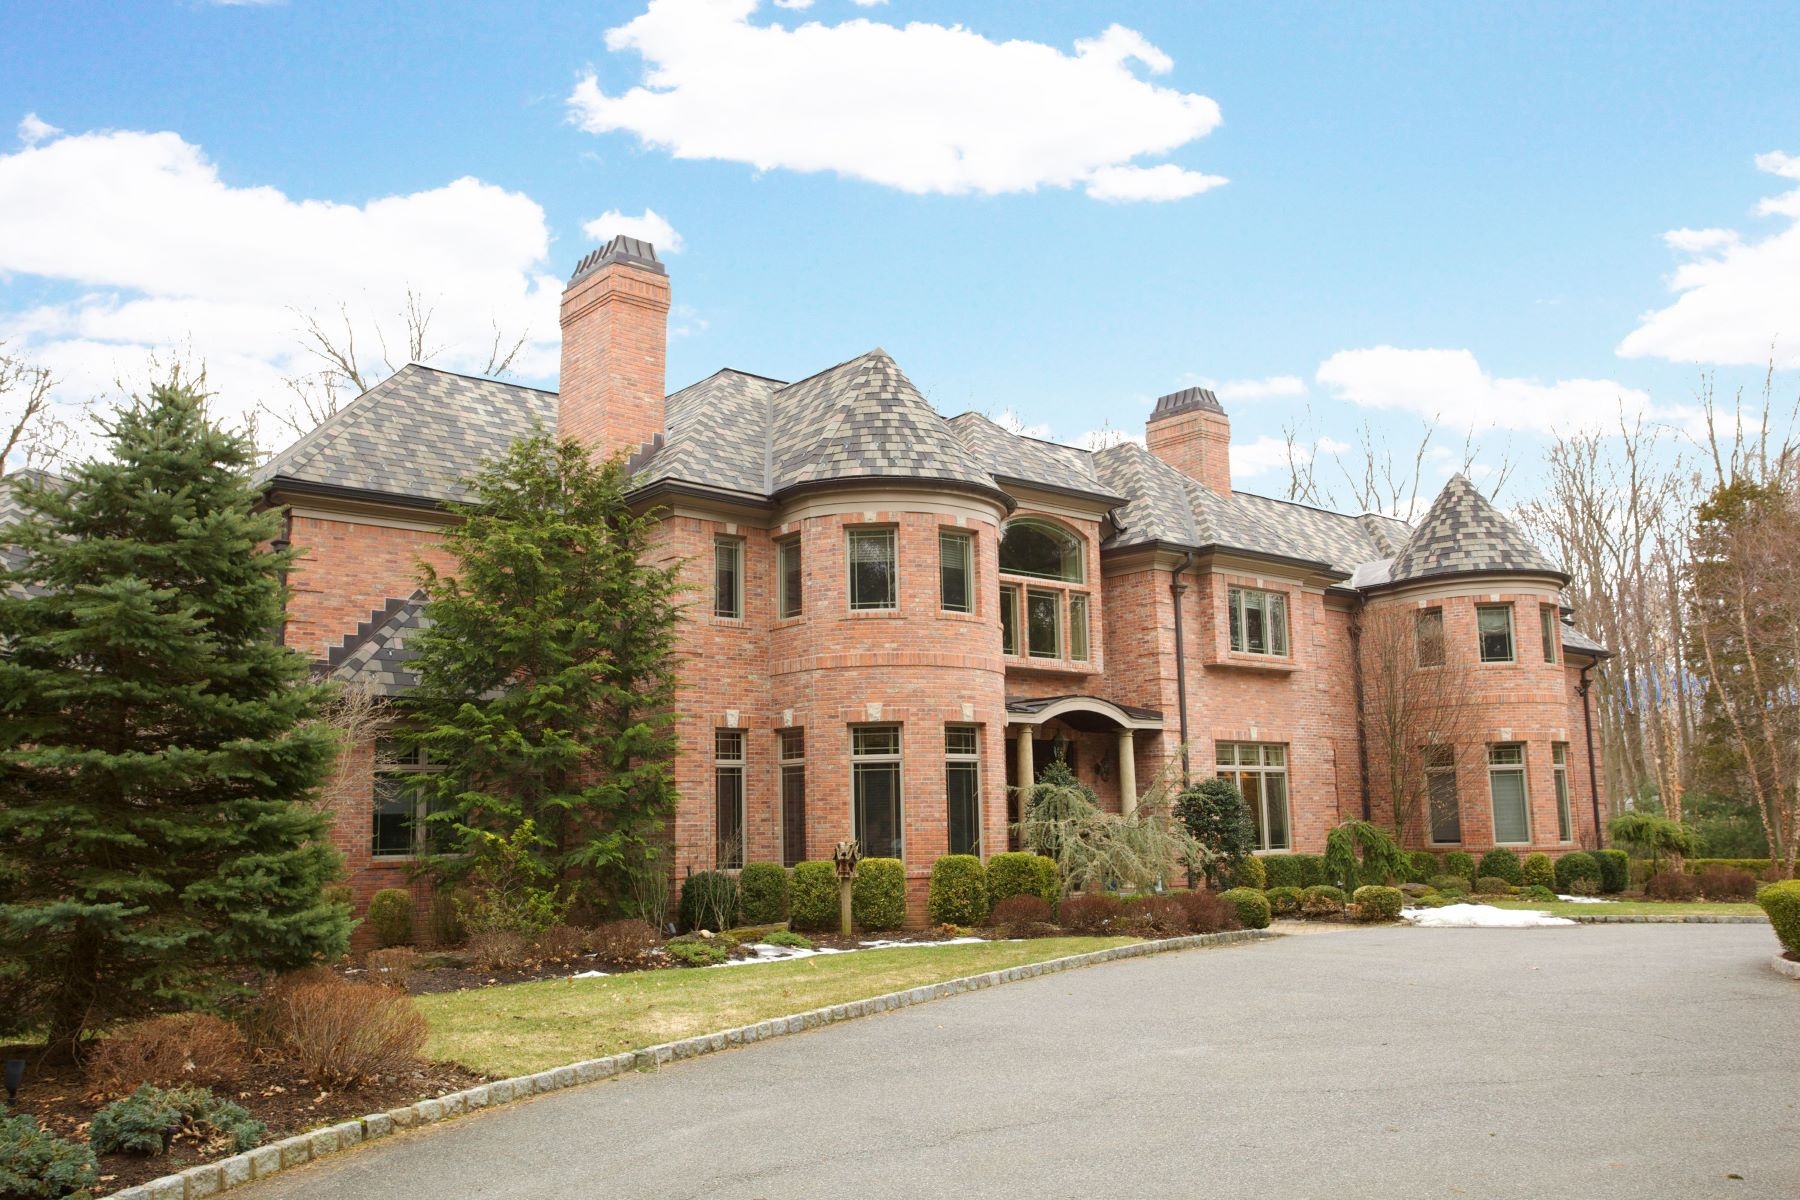 Single Family Home for Sale at Grand Brick Manor 7 Bayberry Drive Saddle River, New Jersey 07458 United States